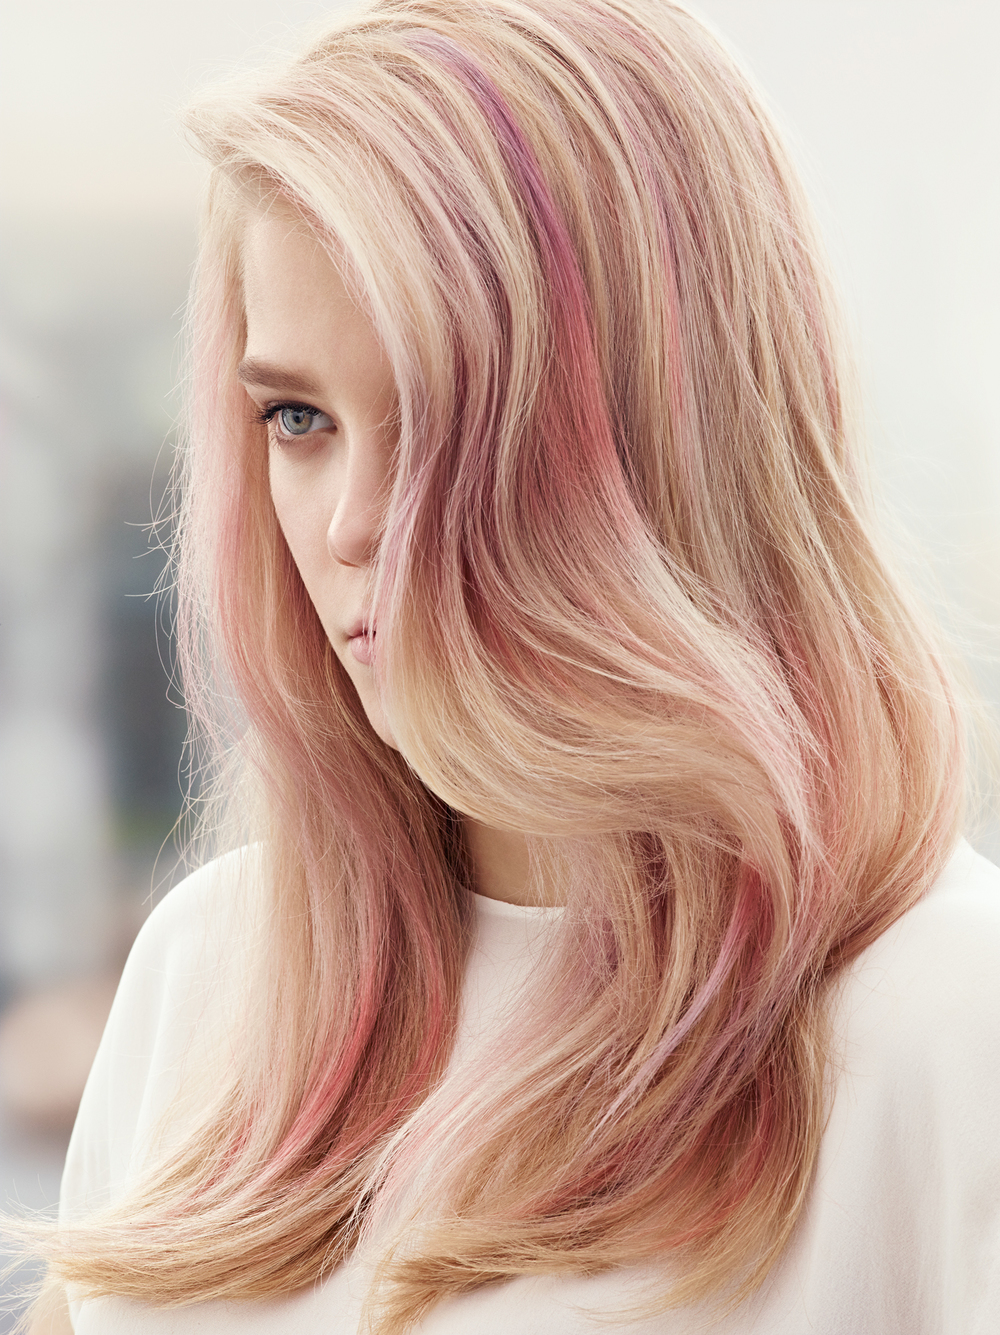 Edgy pink balayage from creative colorists at MLD hair salon in Soho